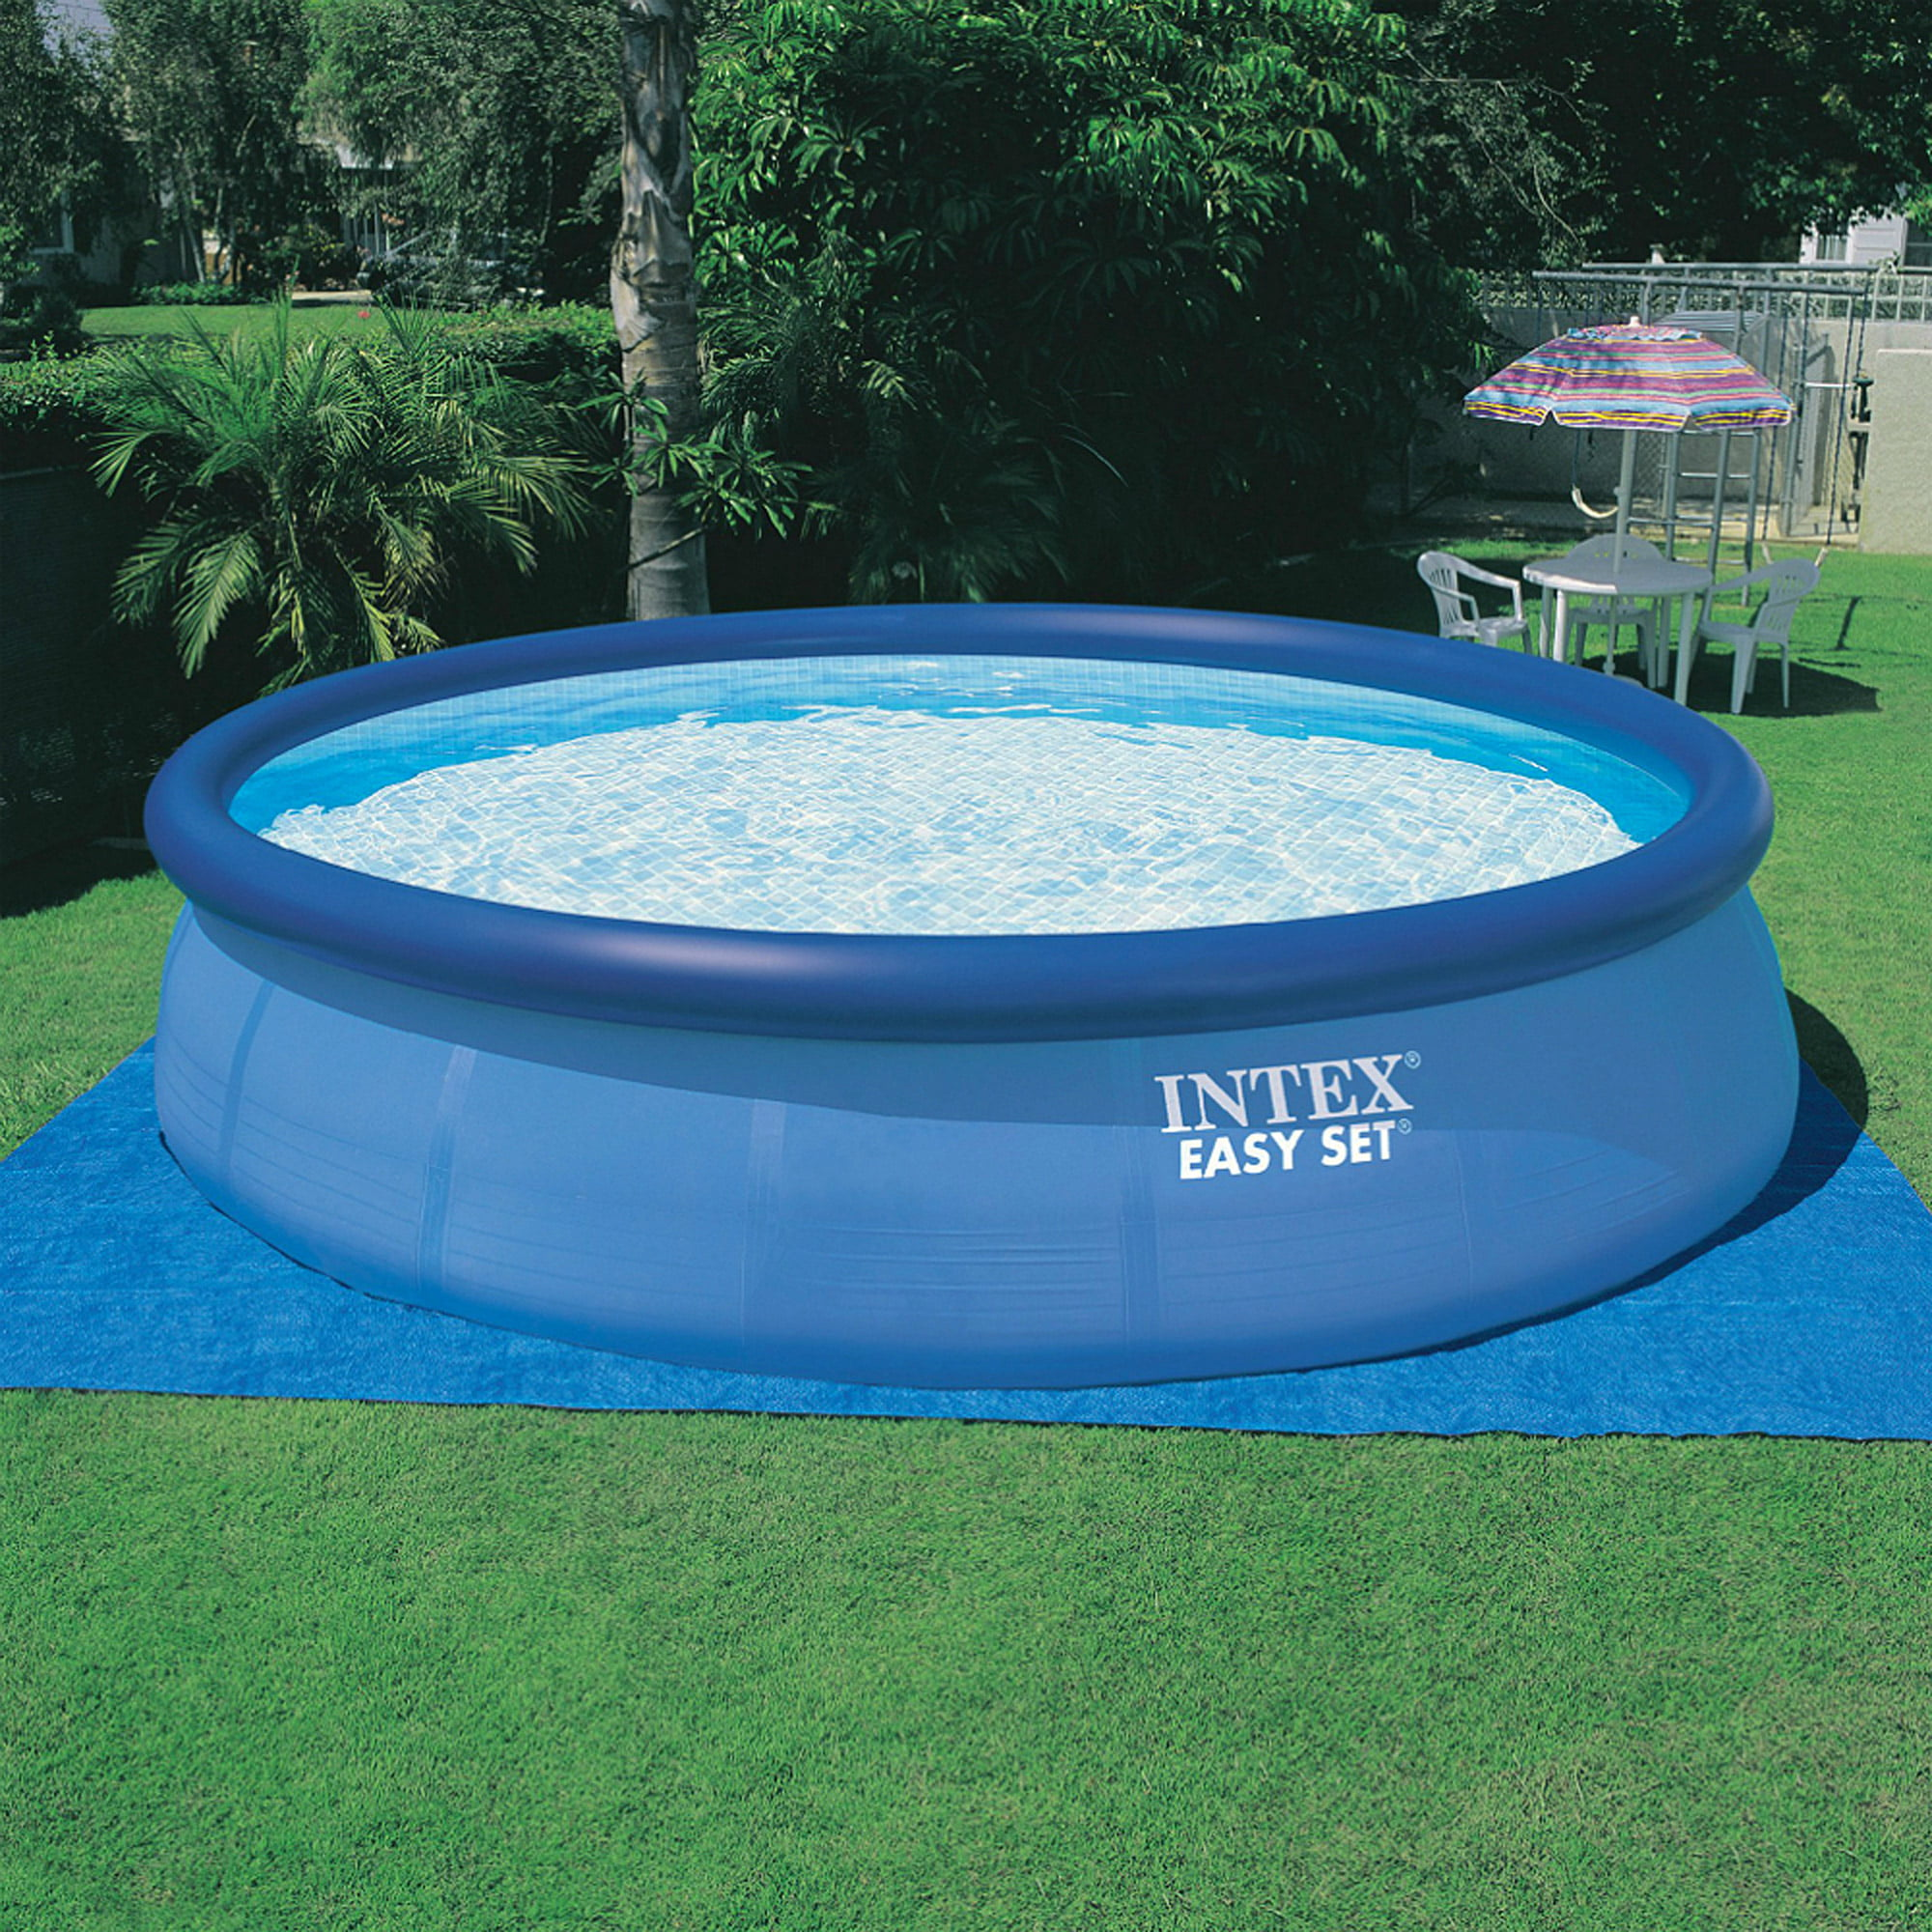 Intex X Easy Set Above Ground Swimming Pool With Filter